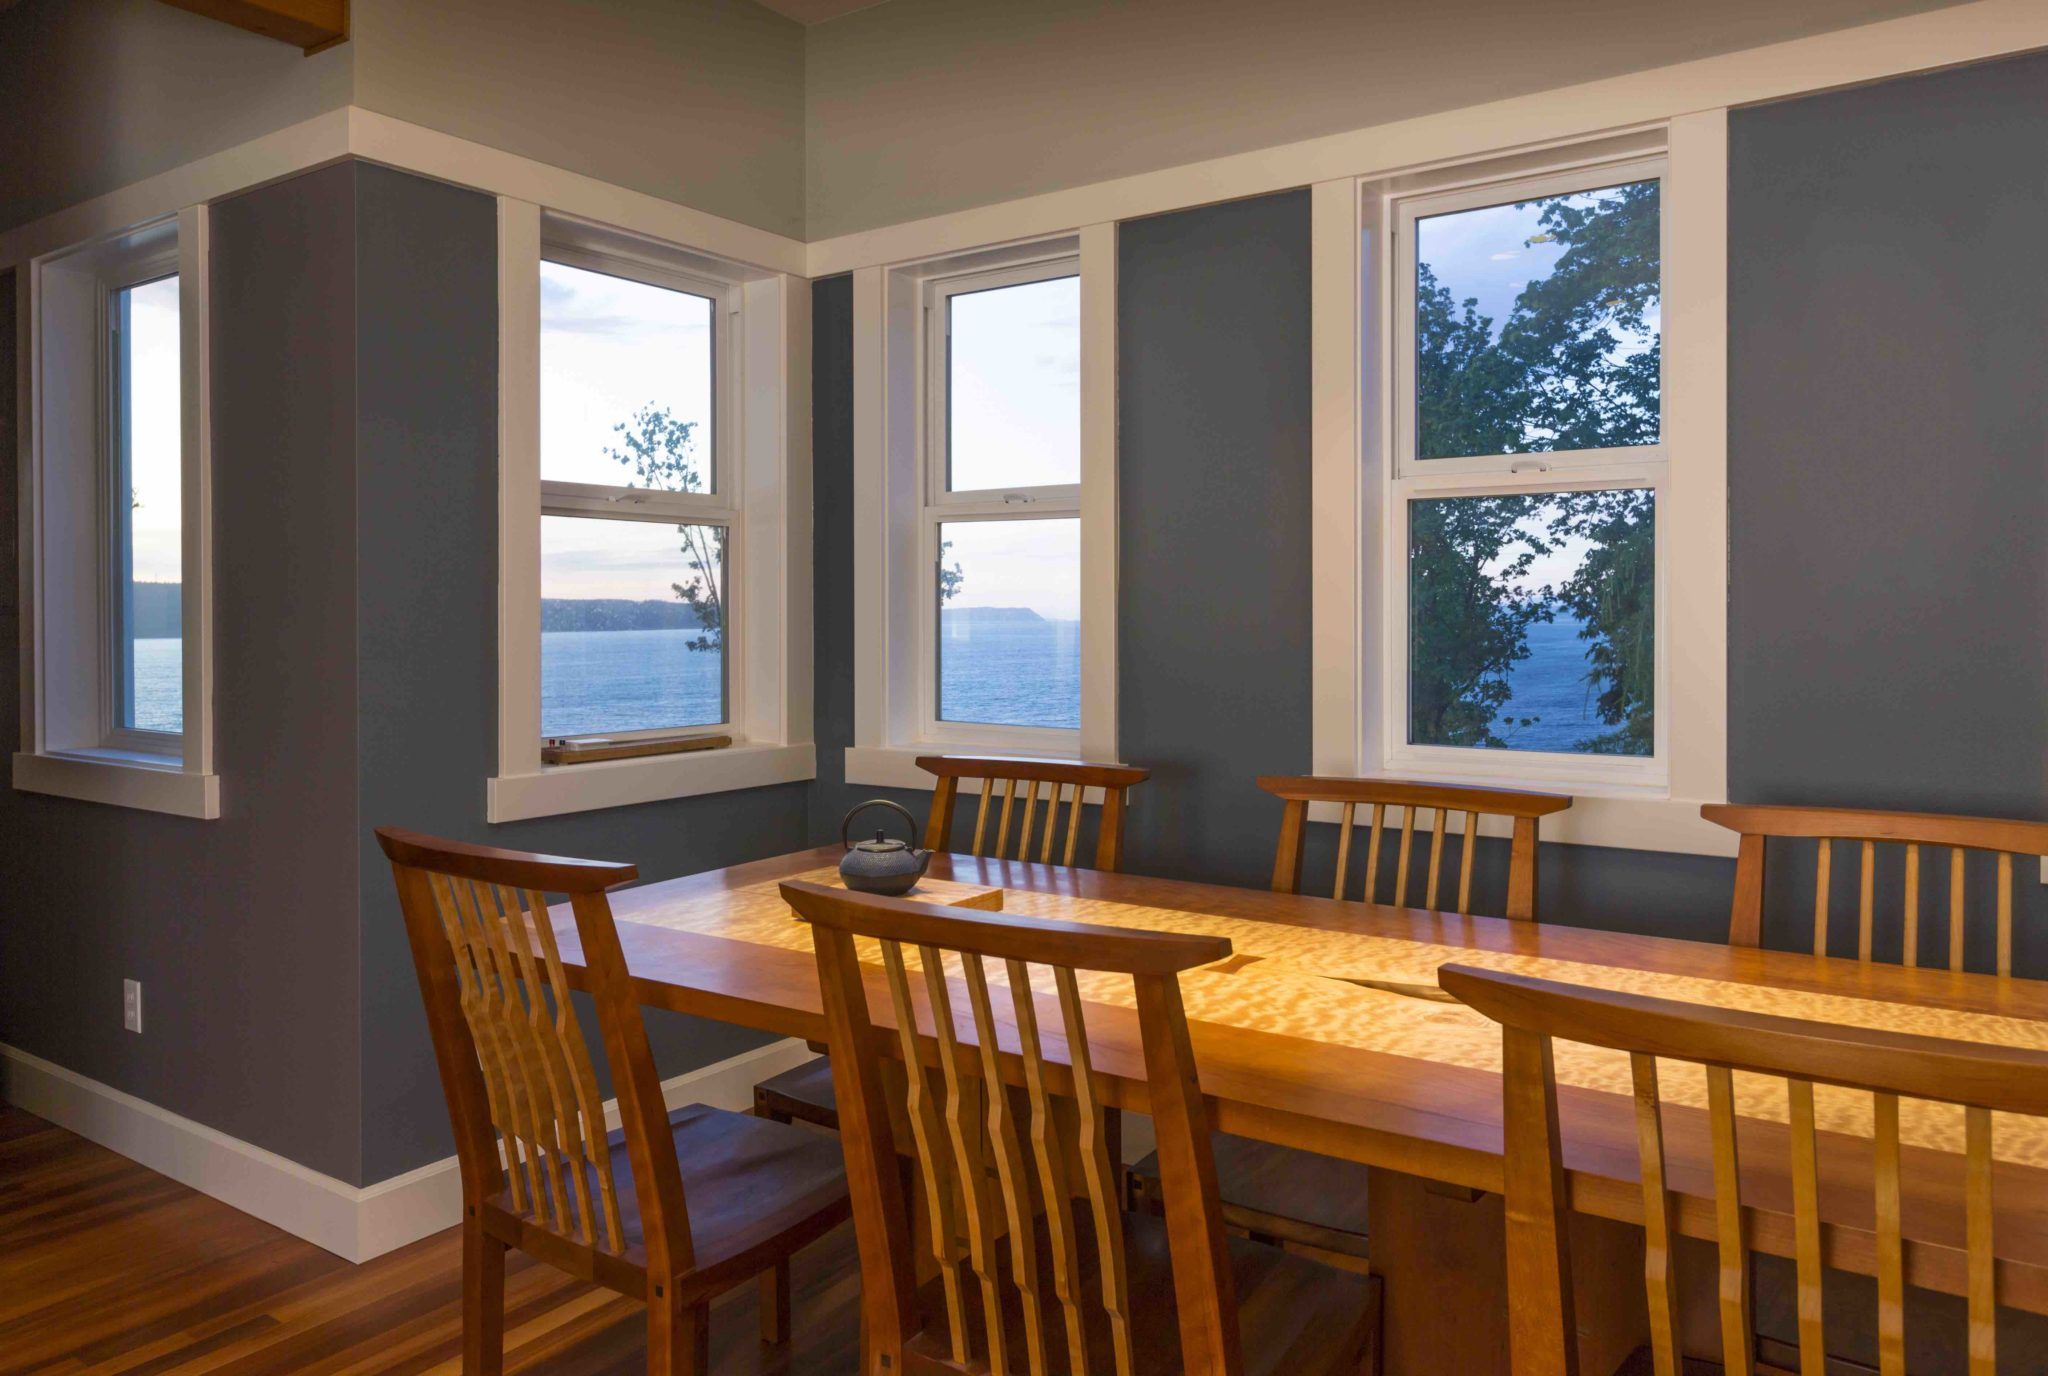 Replacement Windows Discount On Best Replacement Window Price Window Prices Best Replacement Windows Vinyl Replacement Windows